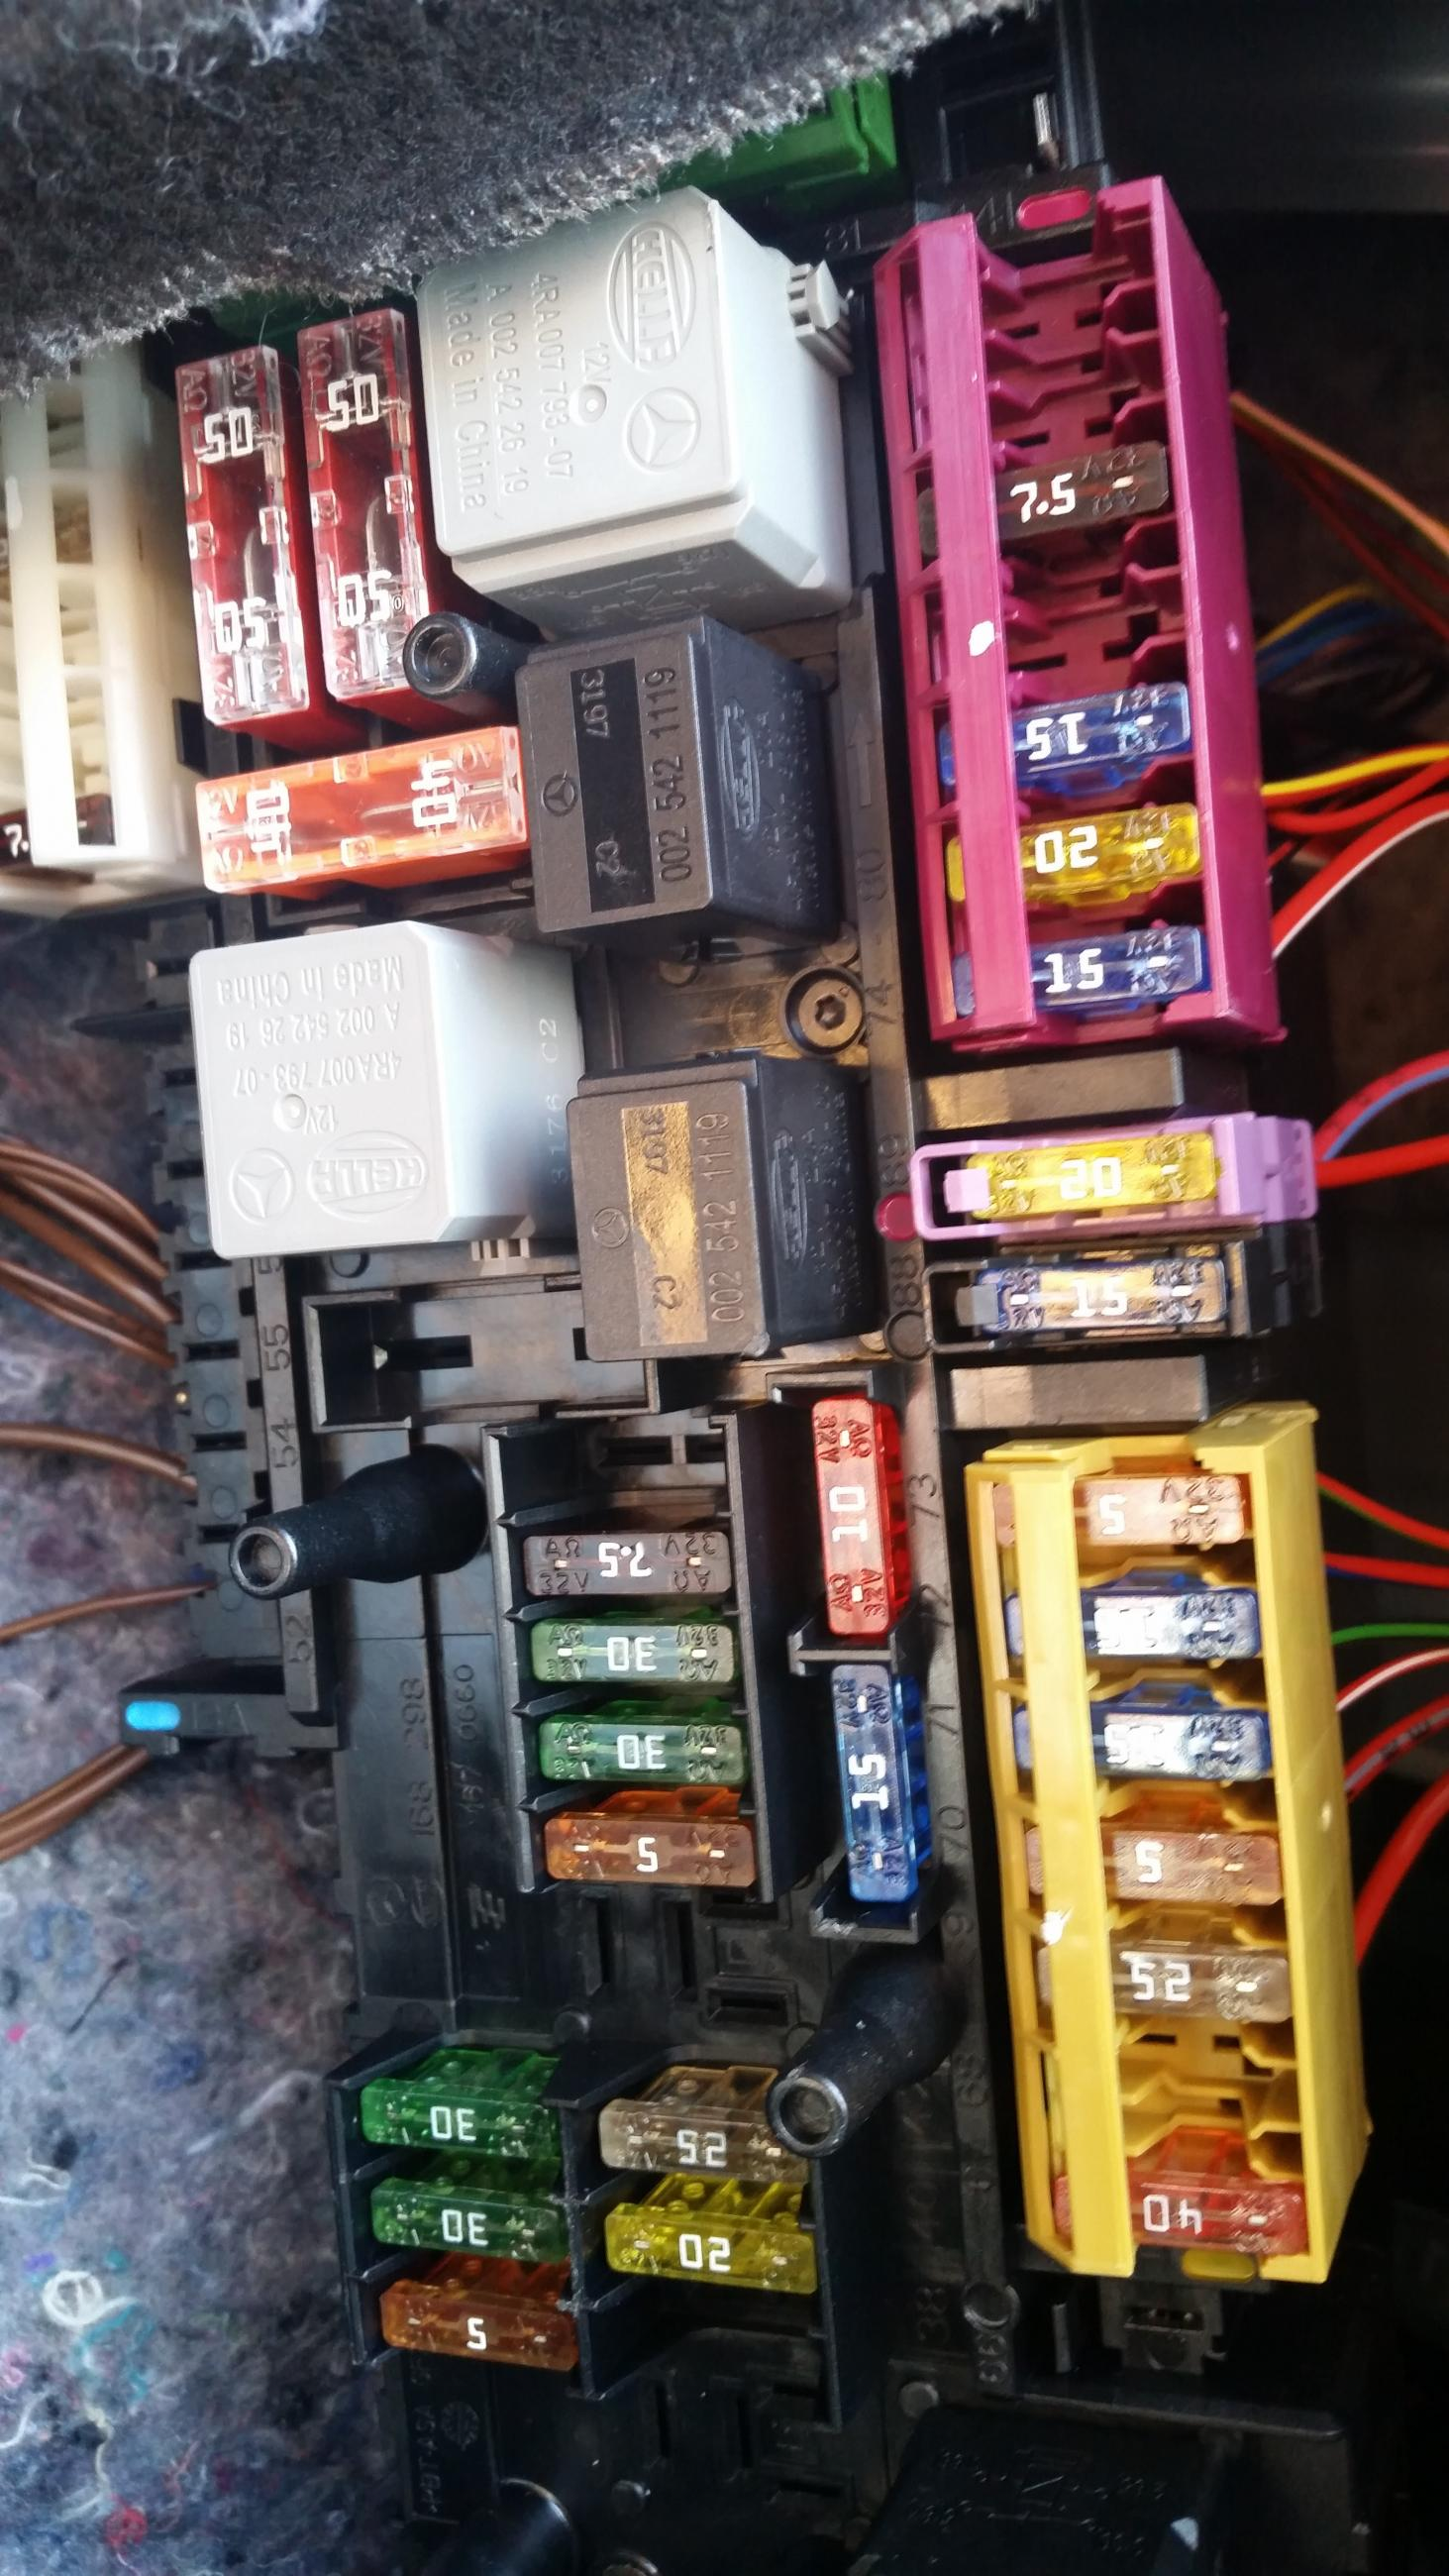 Ford Essex V6 Engine Besides 2001 Ford E250 Fuse Box Diagram Also Ford